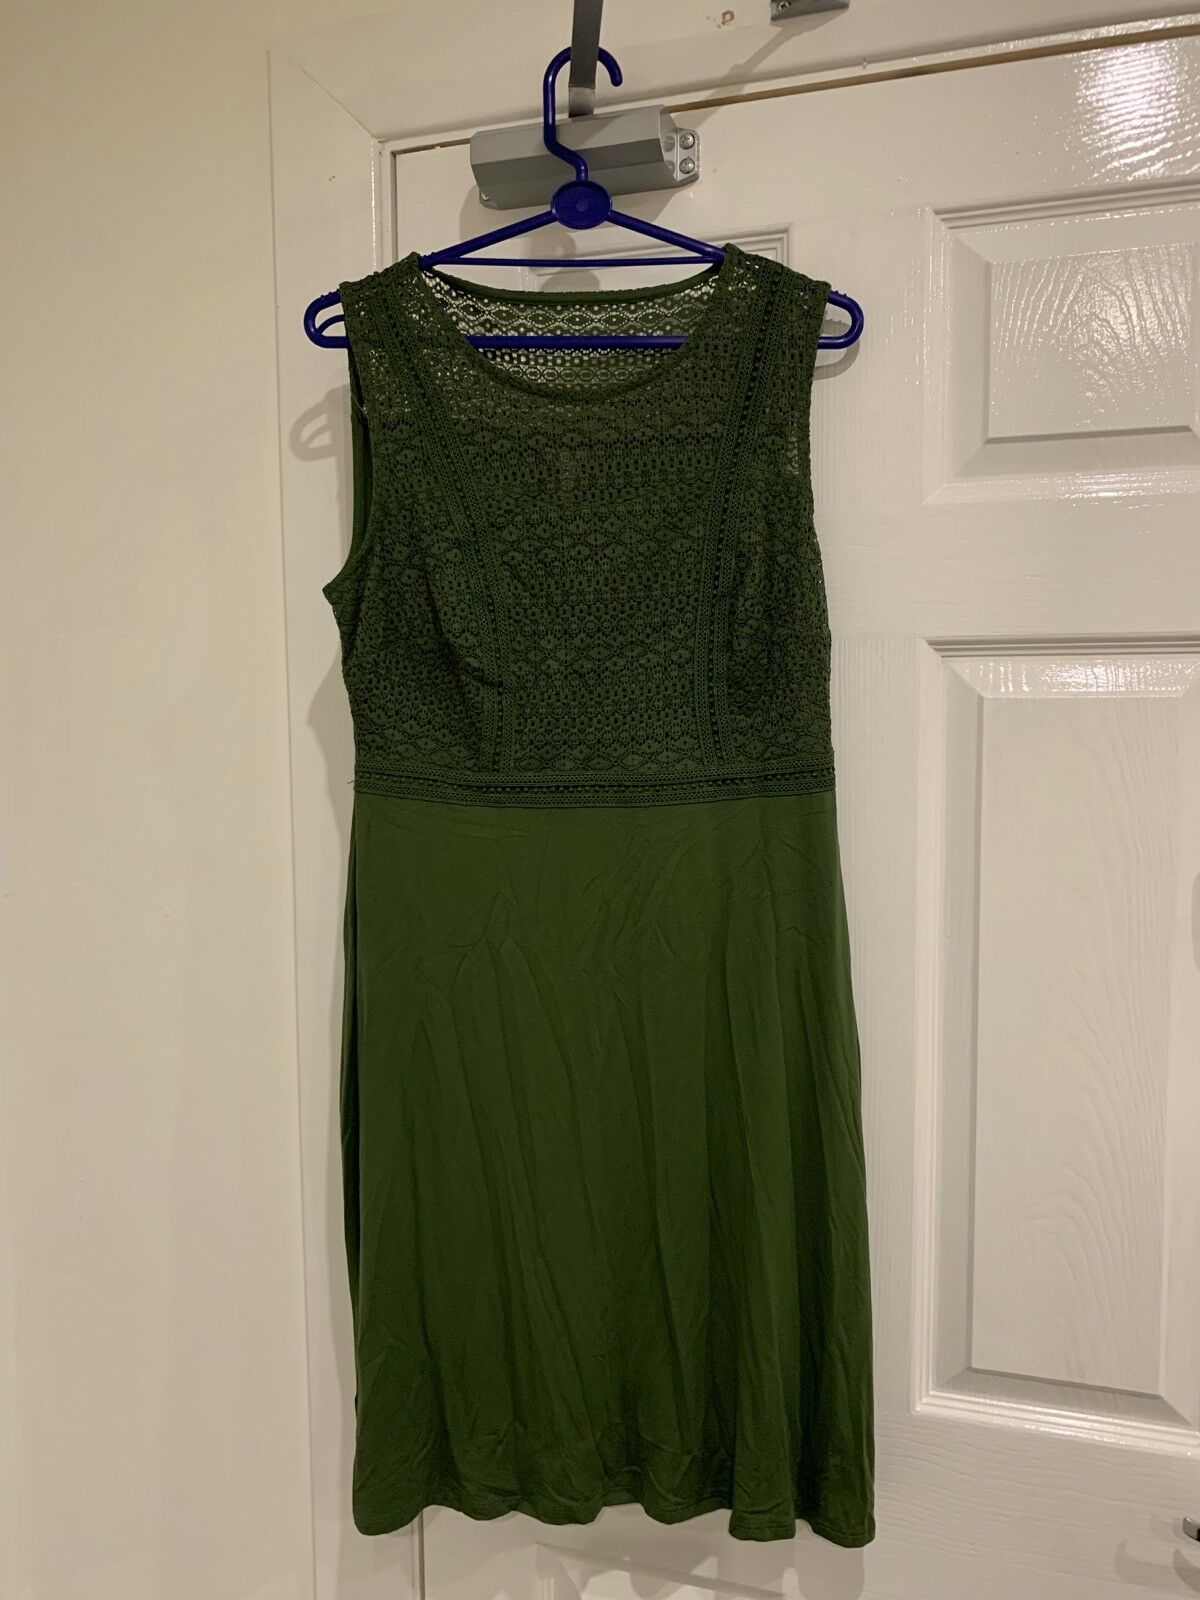 Bravissimo Really   Super Curvy Womens Khaki Lace Bodice Sun Dress - Size 8